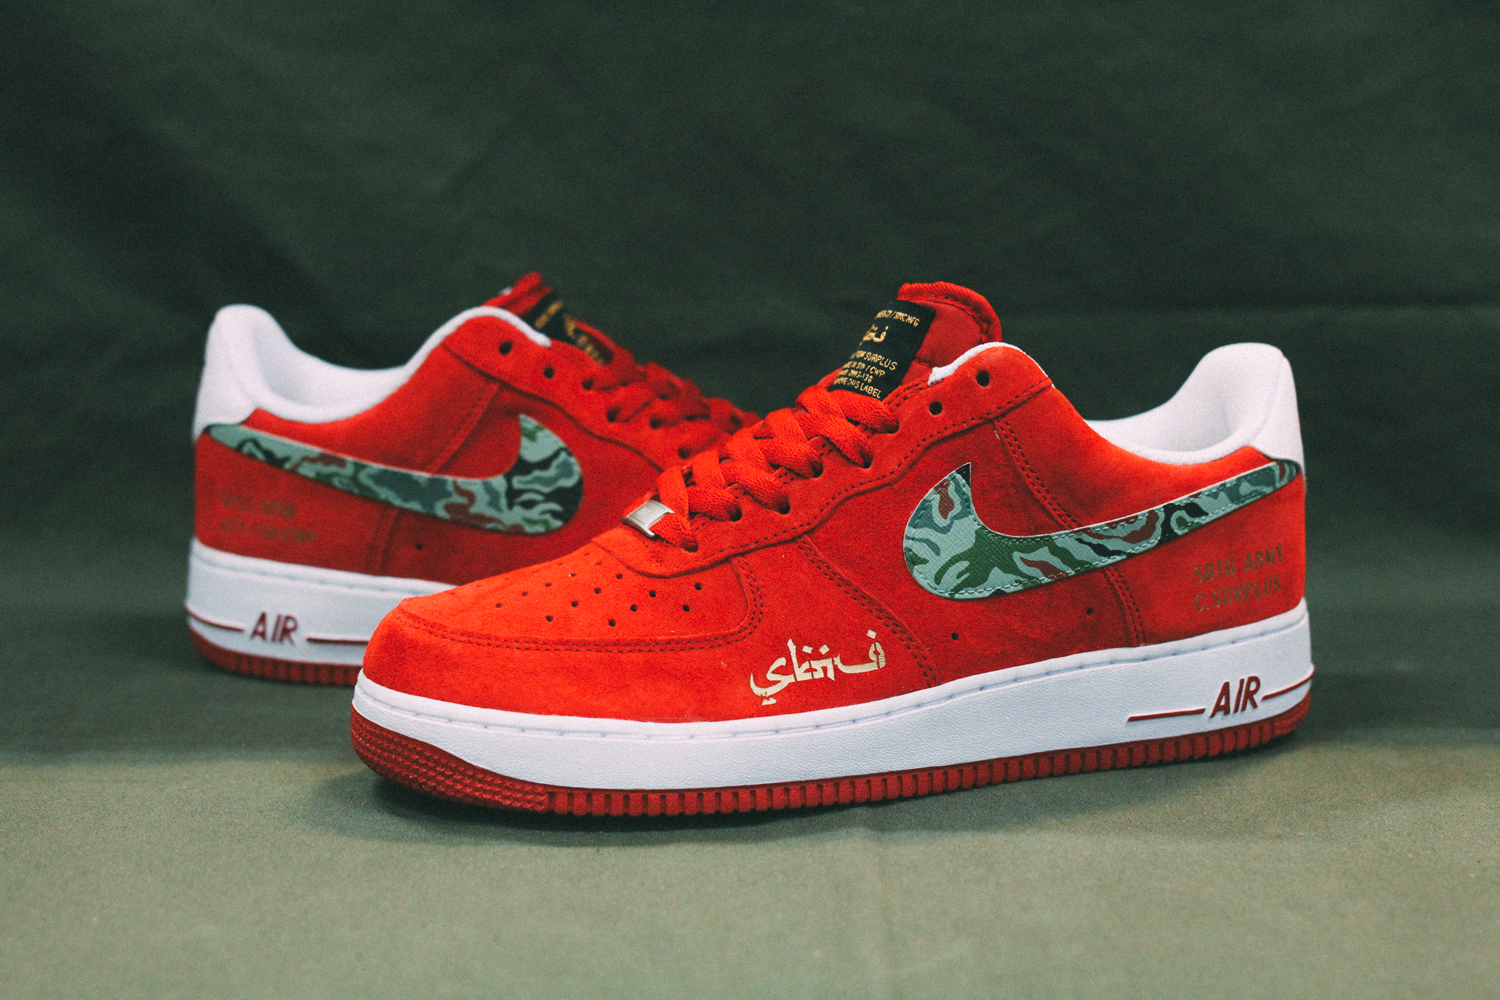 new style 41286 ff2e5 Legendary Sneaker Customizer SBTG Is Back With The Air Jordan 3 and 4 cheap